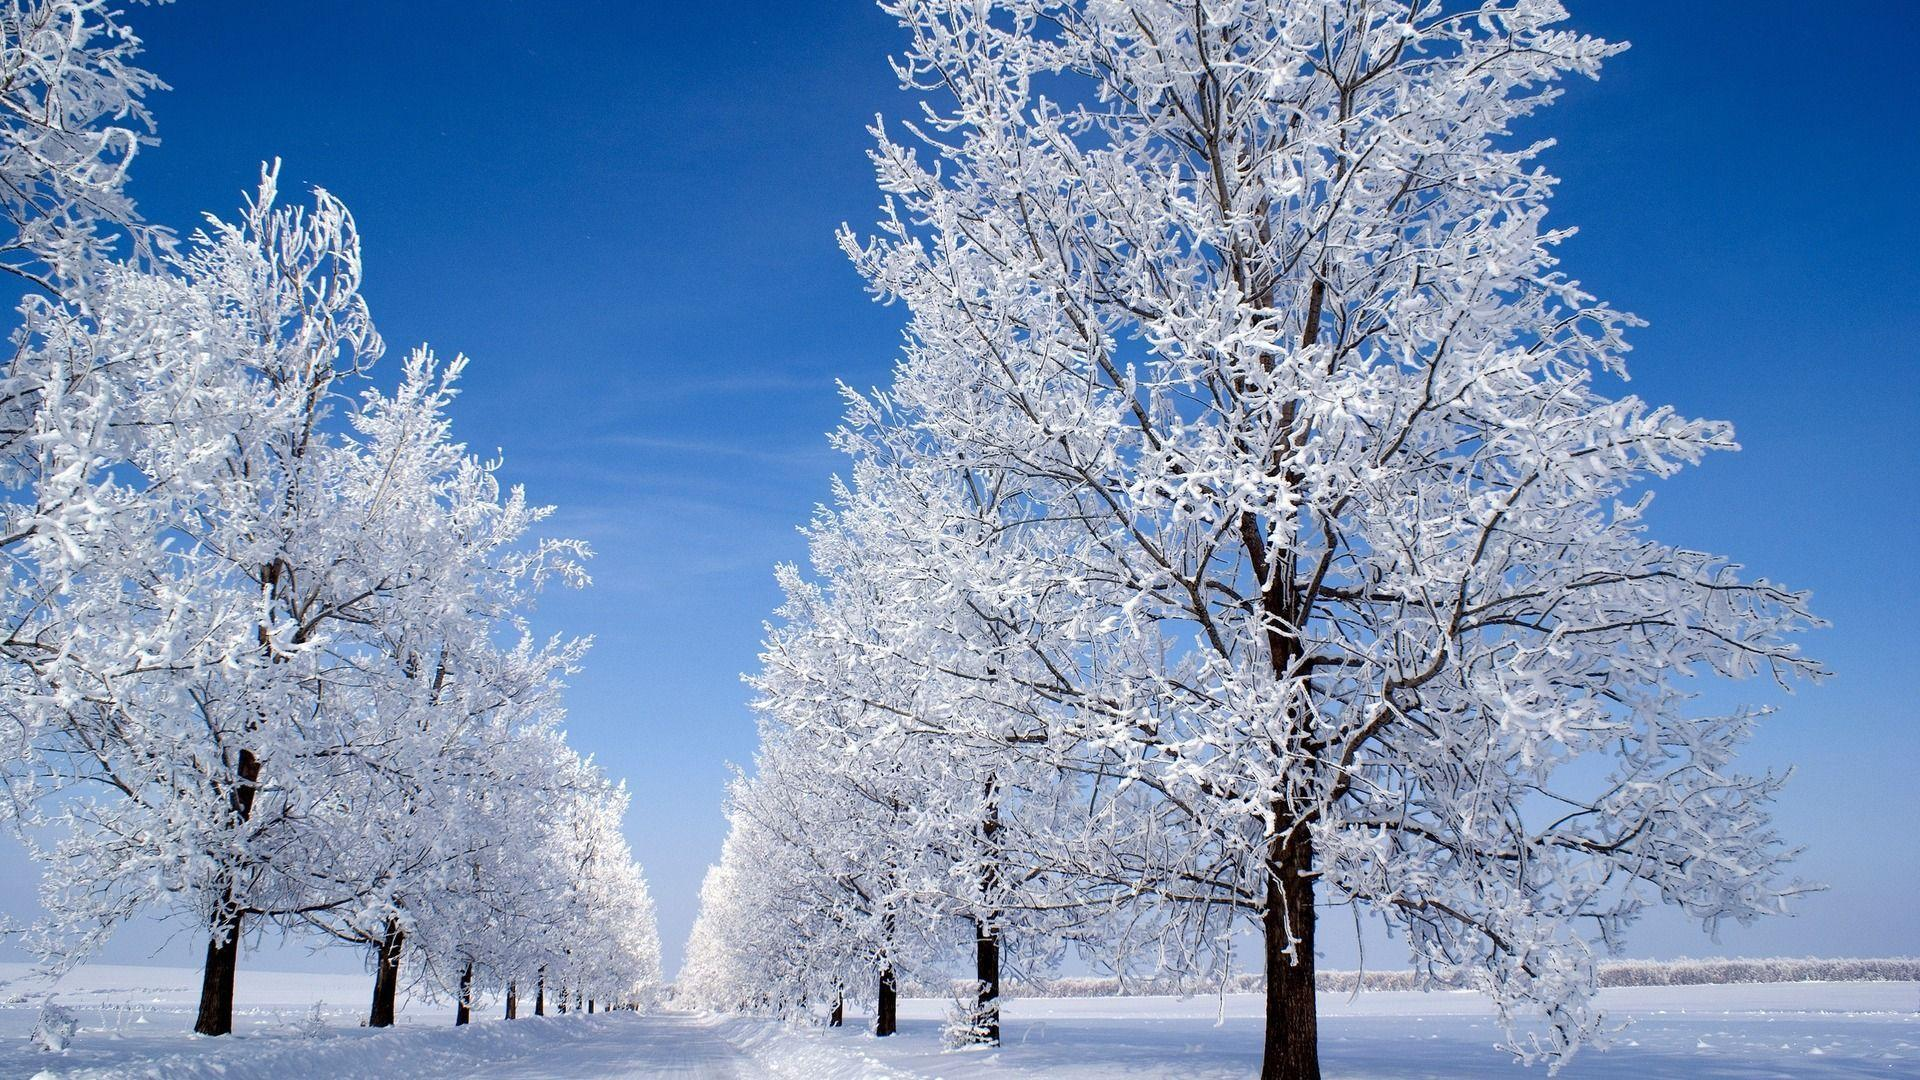 Nature & Landscape : Prepossessing Winter Snow on Trees Wallpapers